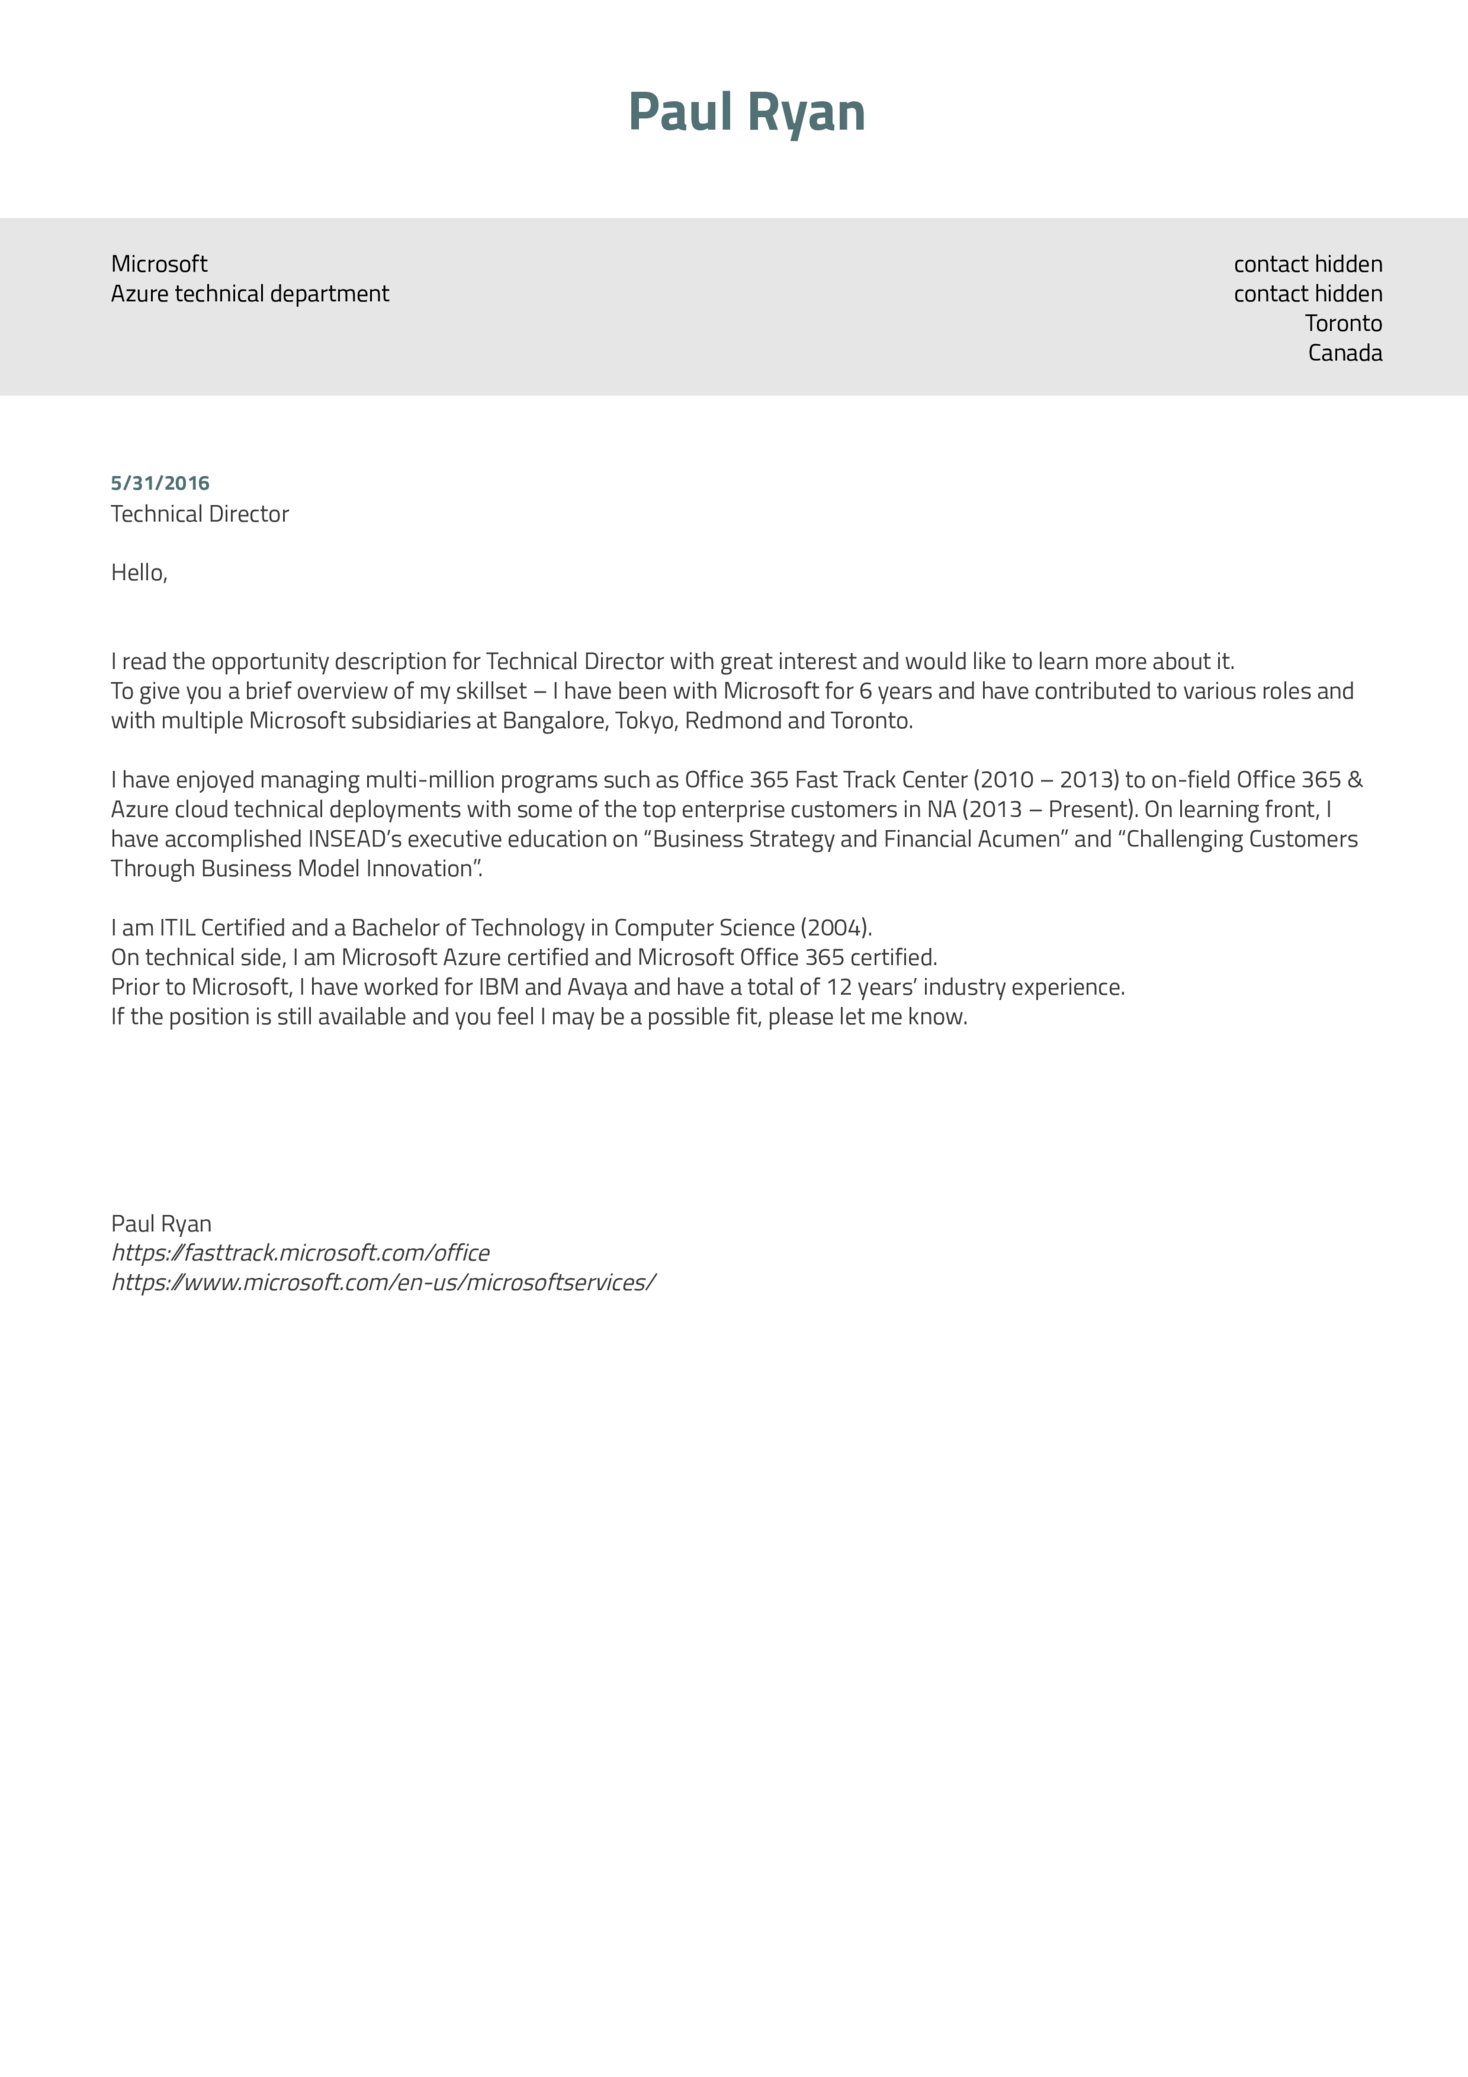 Cover Letter Examples by Real People: Microsoft technical director ...